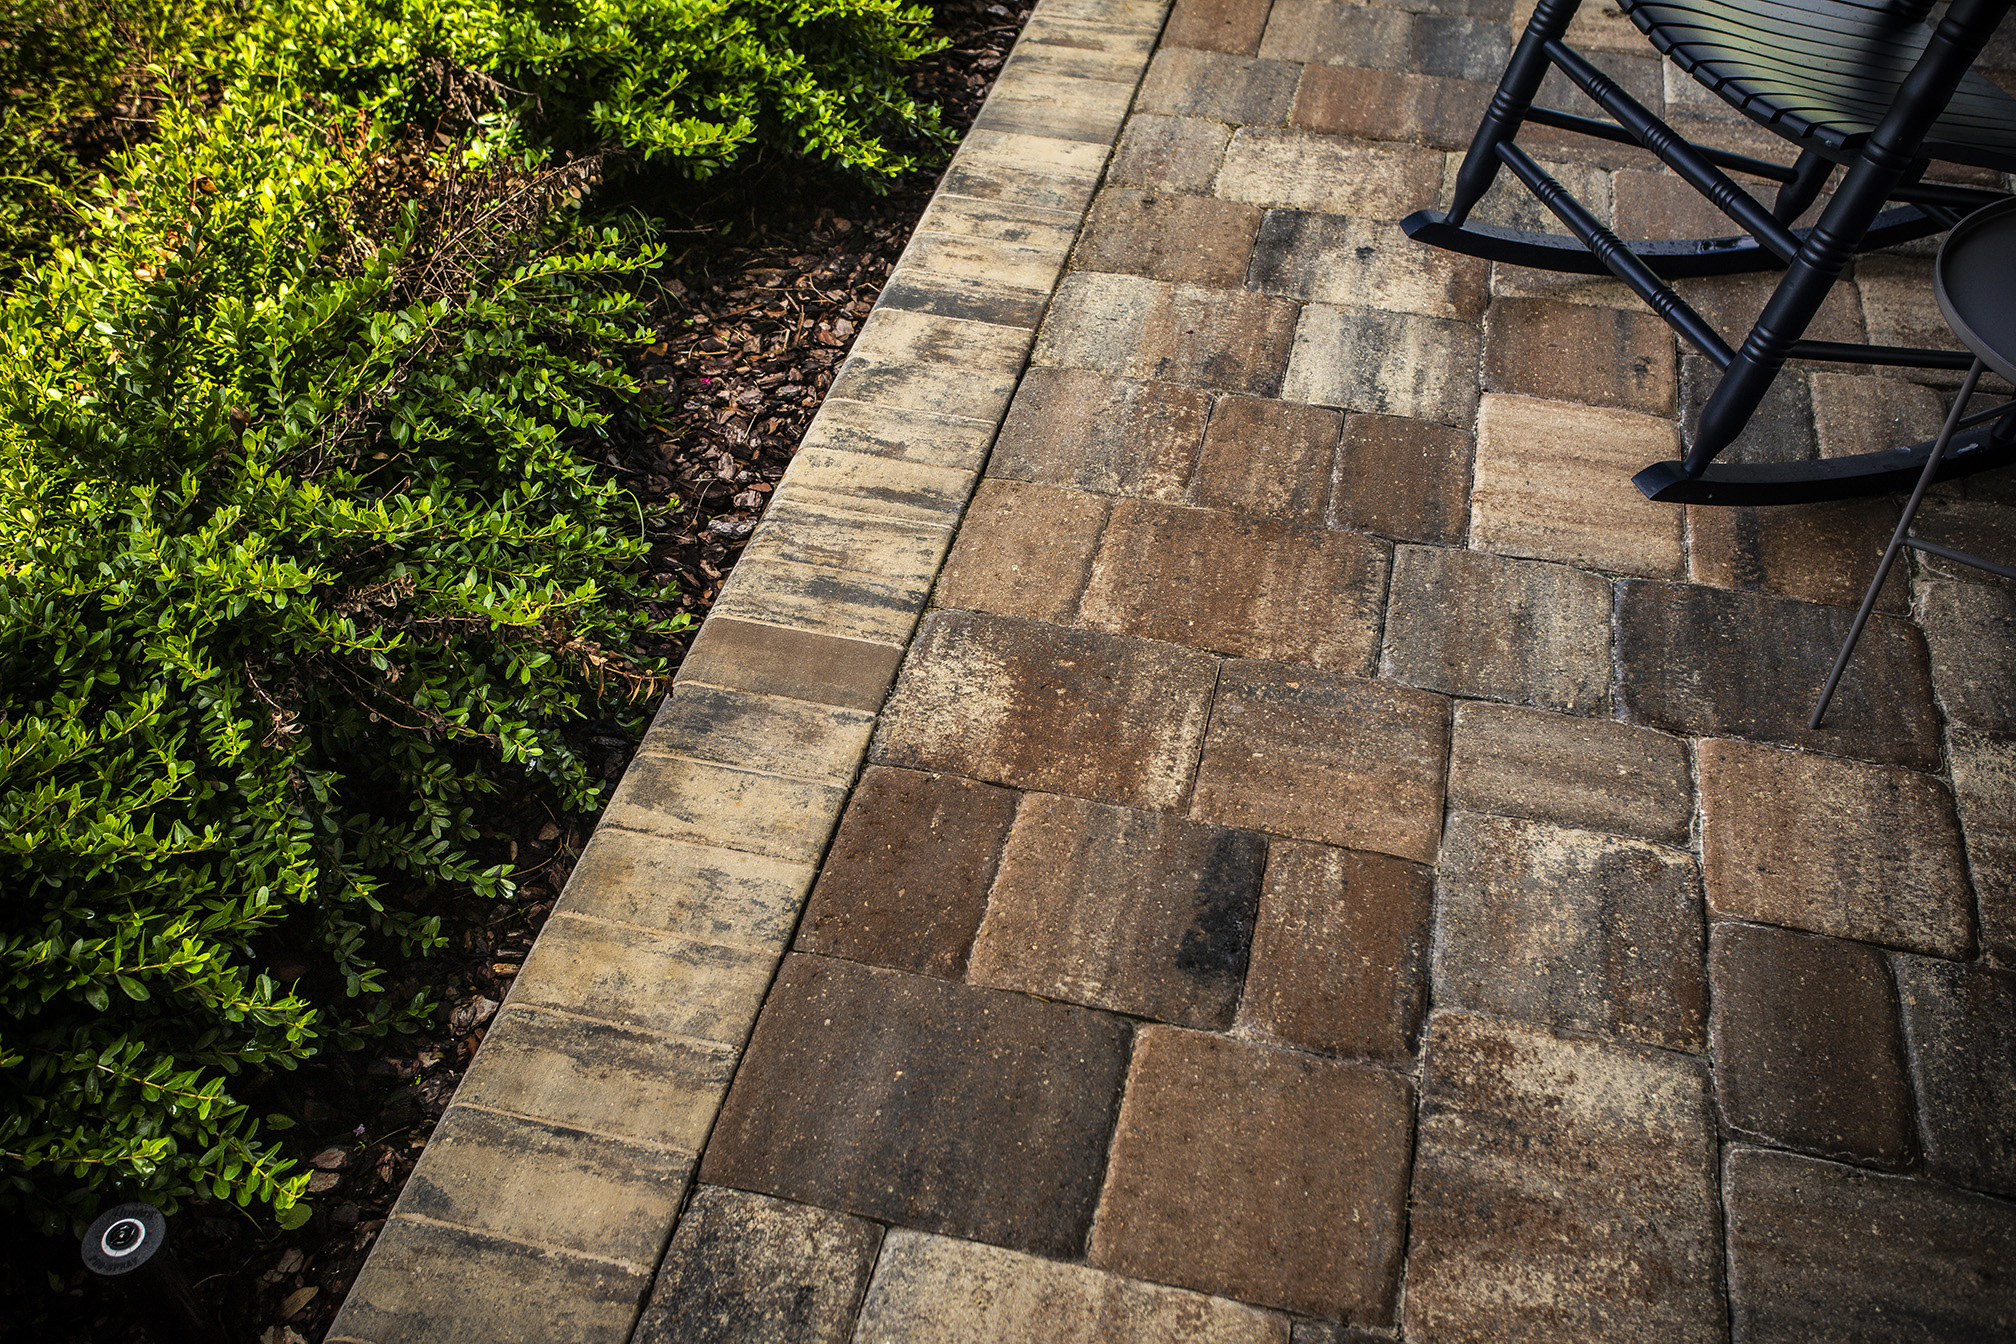 patio pavers near plantings